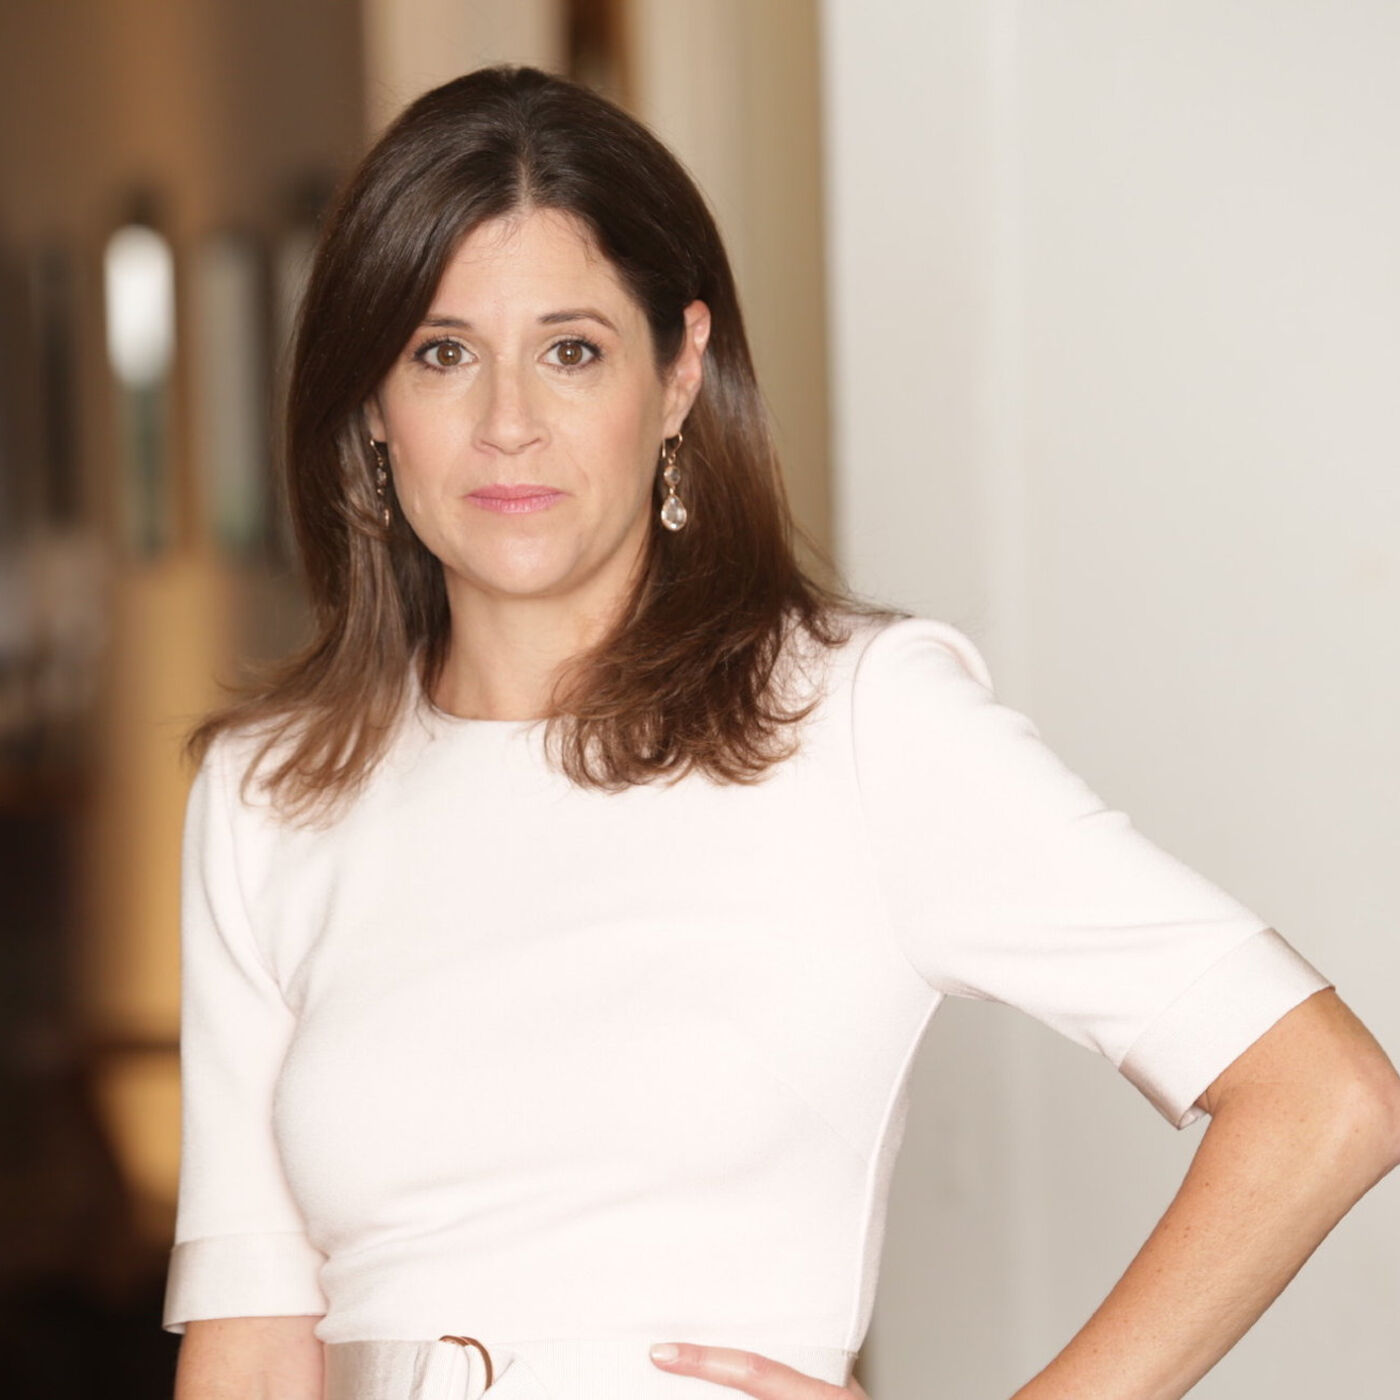 Perfecting Your Pitch featuring Jodi Glickman, RPCV & Executive Coach